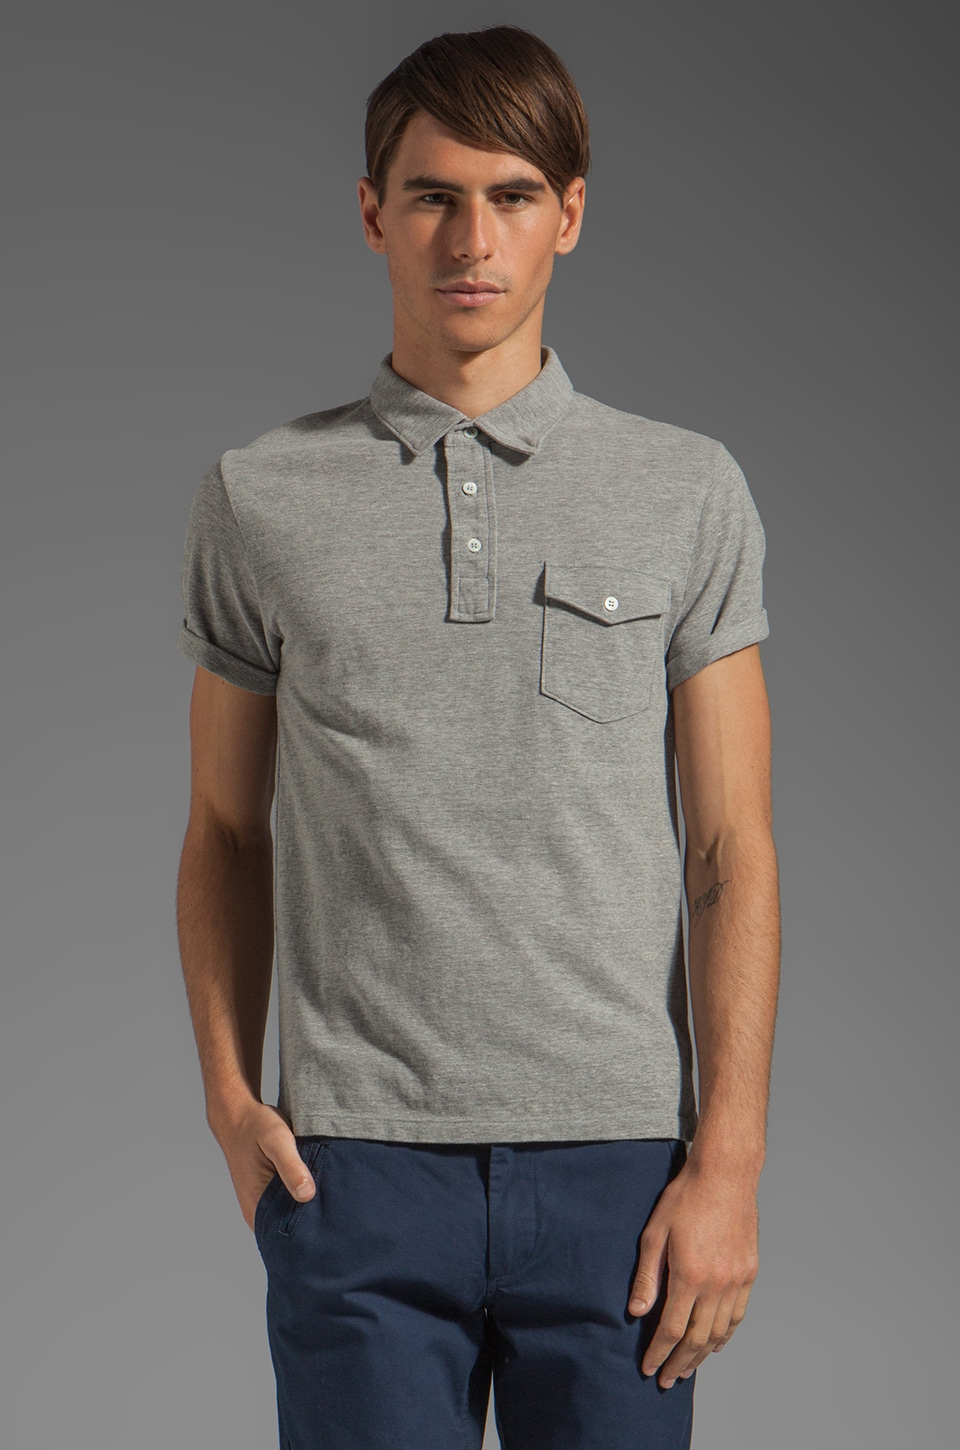 TODD SNYDER Classic Pique Polo in Grey Heather